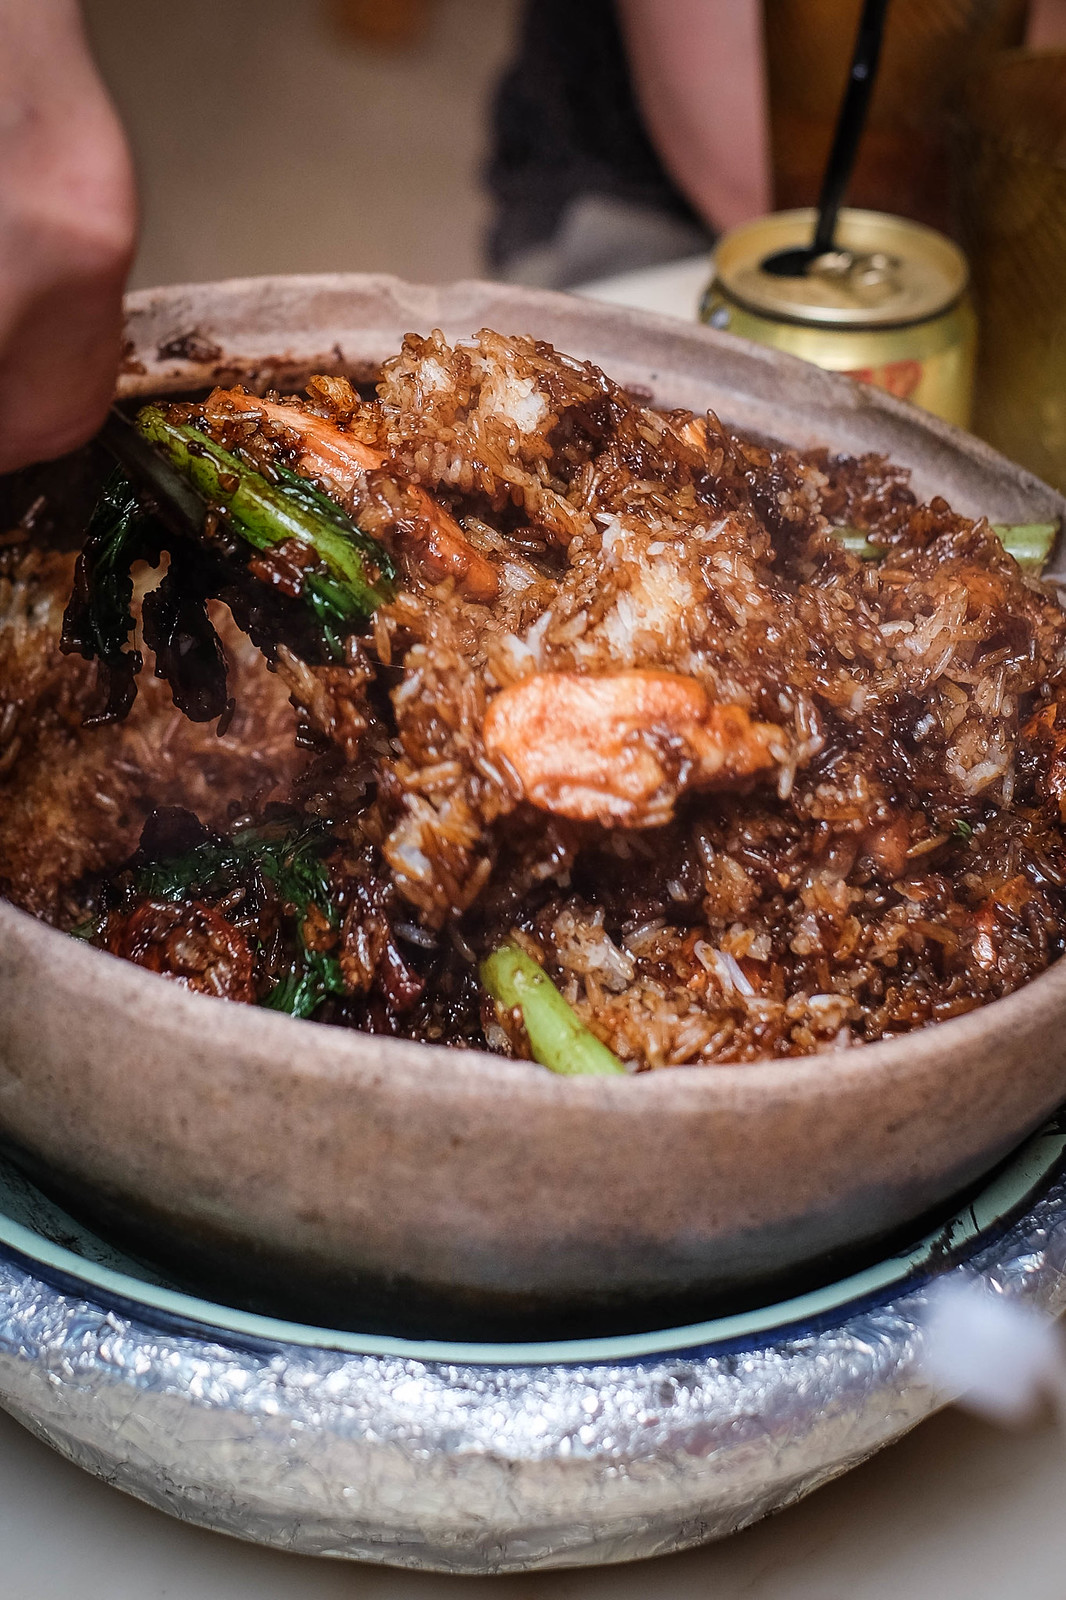 Tossing a portion of claypot rice